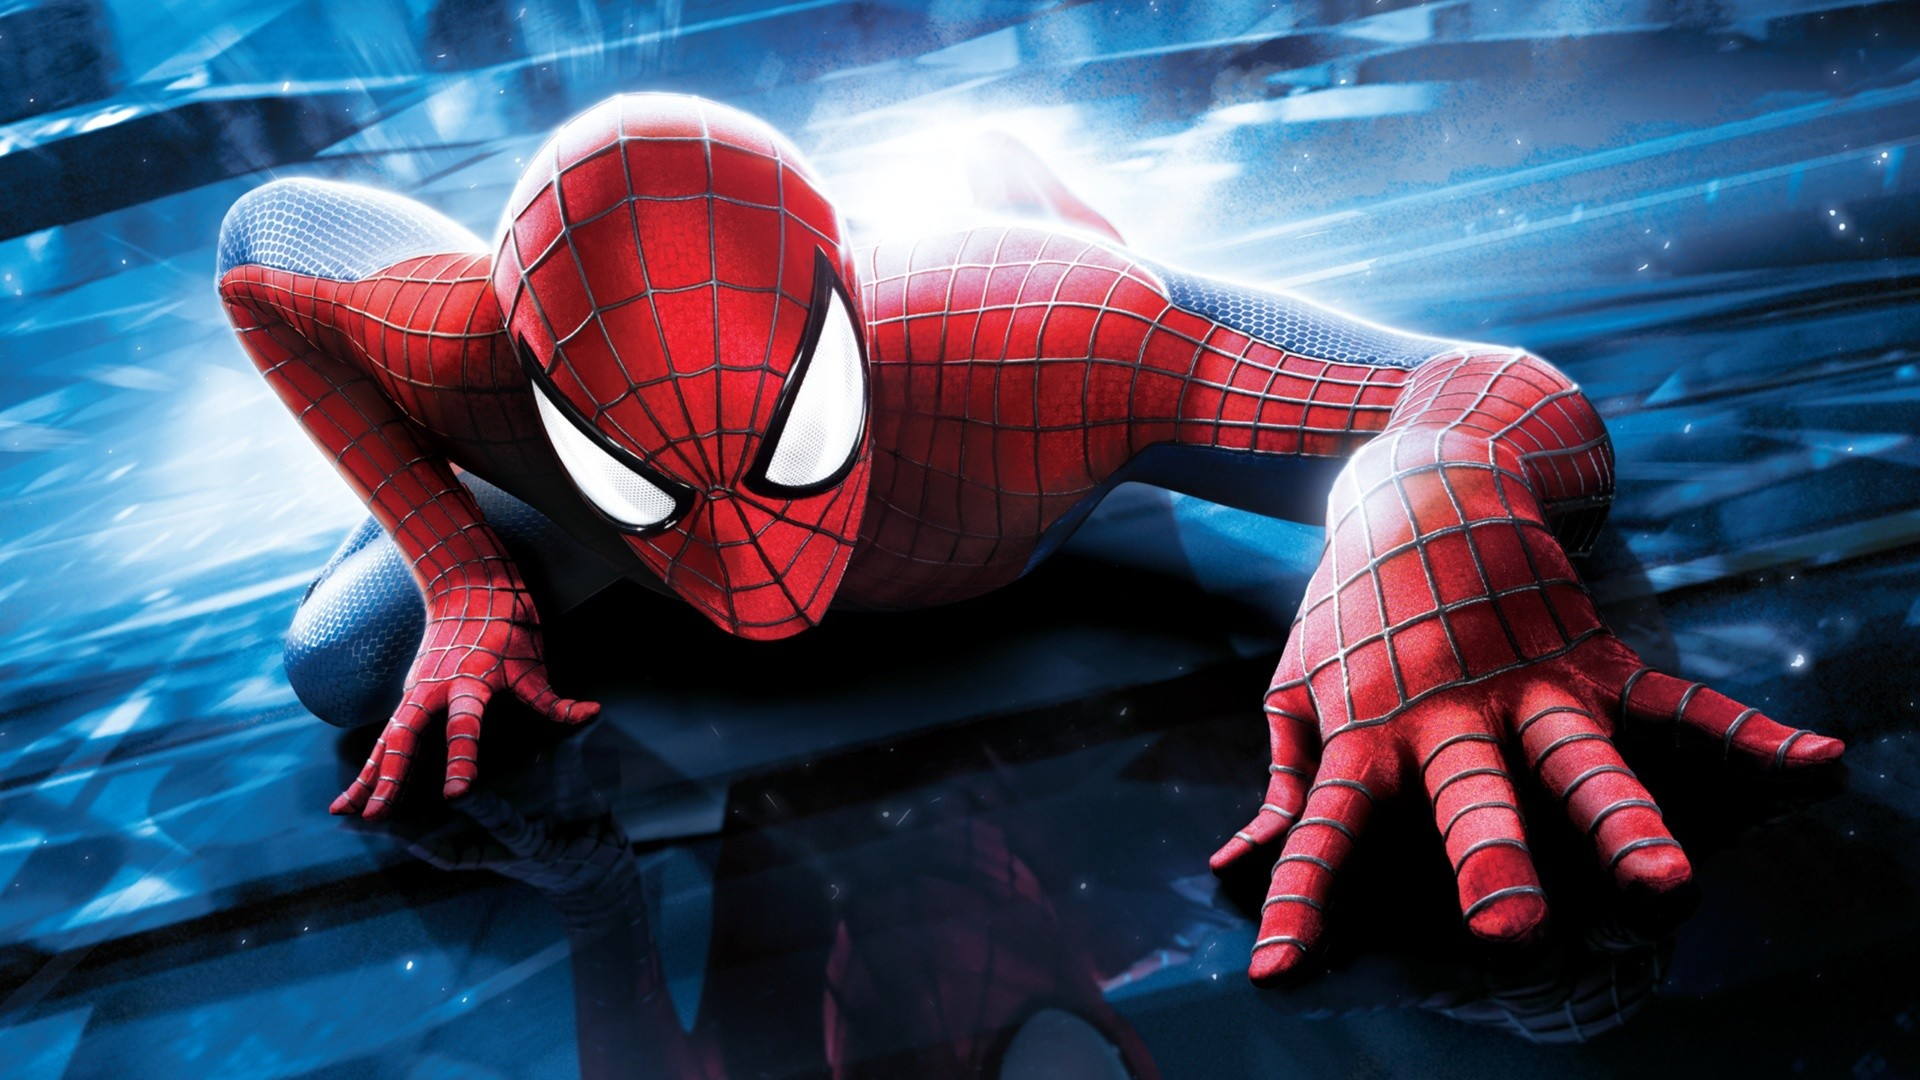 0 Spiderman HD Wallpapers 1080p Group Spiderman HD Wallpapers 1080p Group